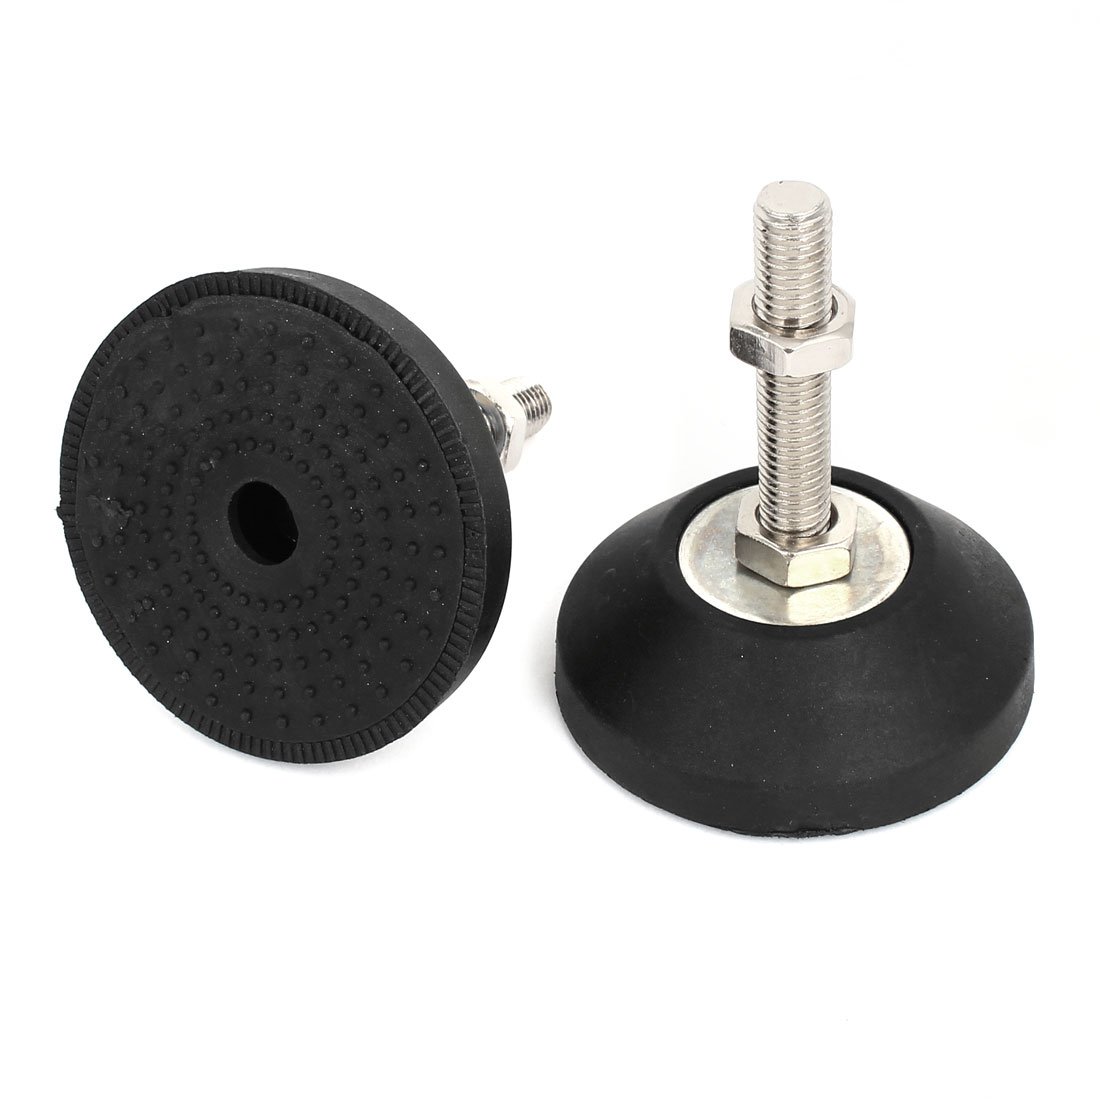 2pcs Machine Furniture M12 x 70mm Threaded Leveling Feet Foot Mounts Pad Mat